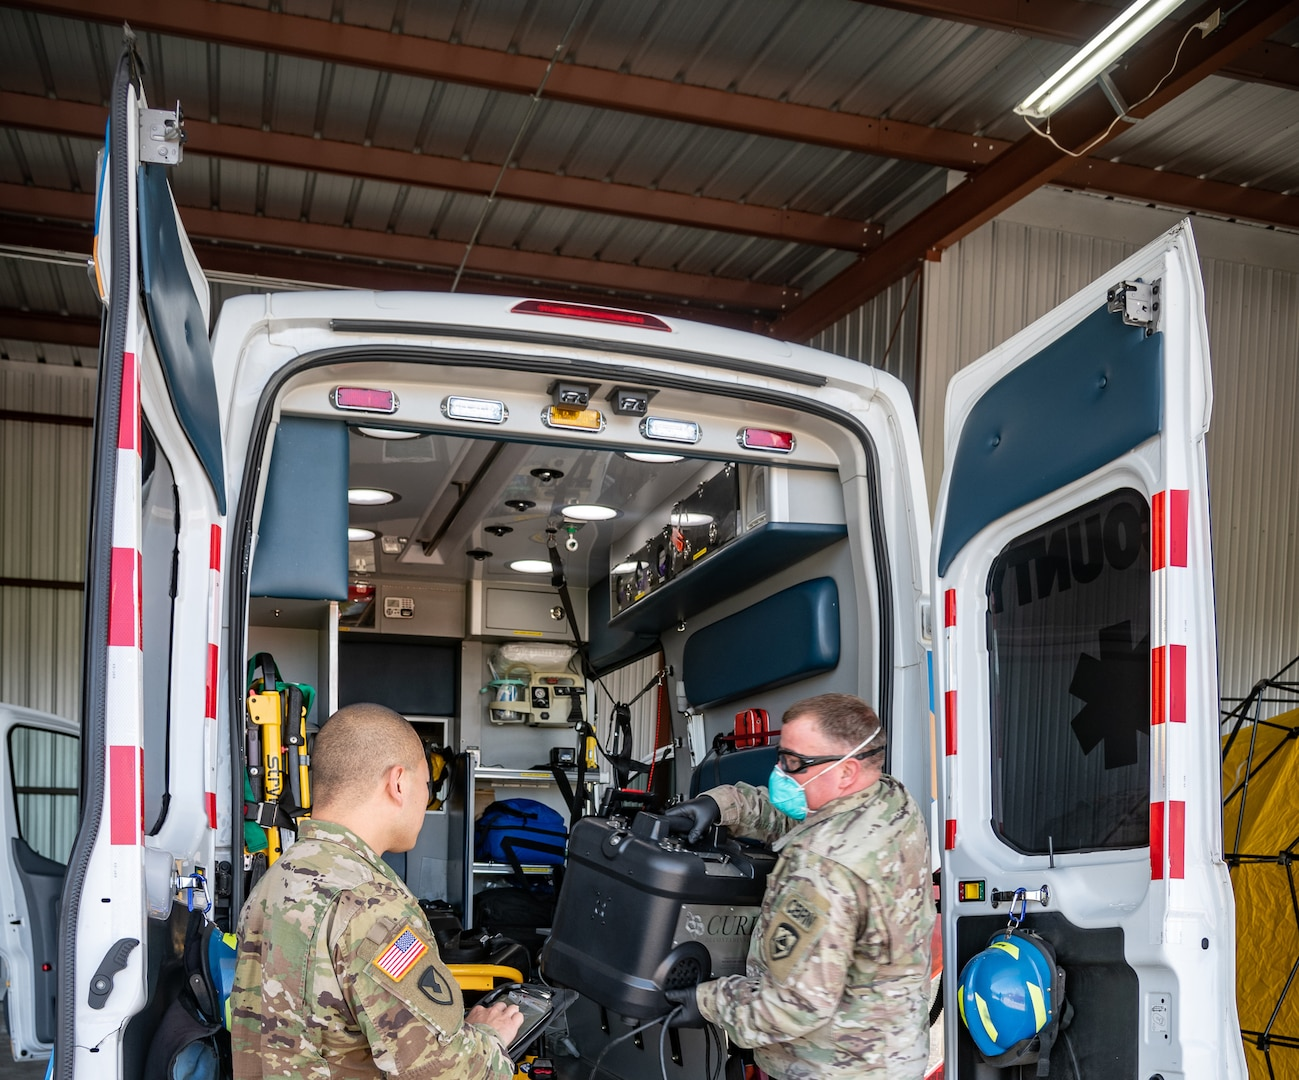 Members of the West Virginia National Guard perform COVID-19 decontamination of first responder vehicles with an Aerosolized Hydrogen Peroxide system at Yeager Airport, Charleston, West Virginia, April 14, 2020. The method will be used to sanitize more than 250 police vehicles and ambulances in the area.